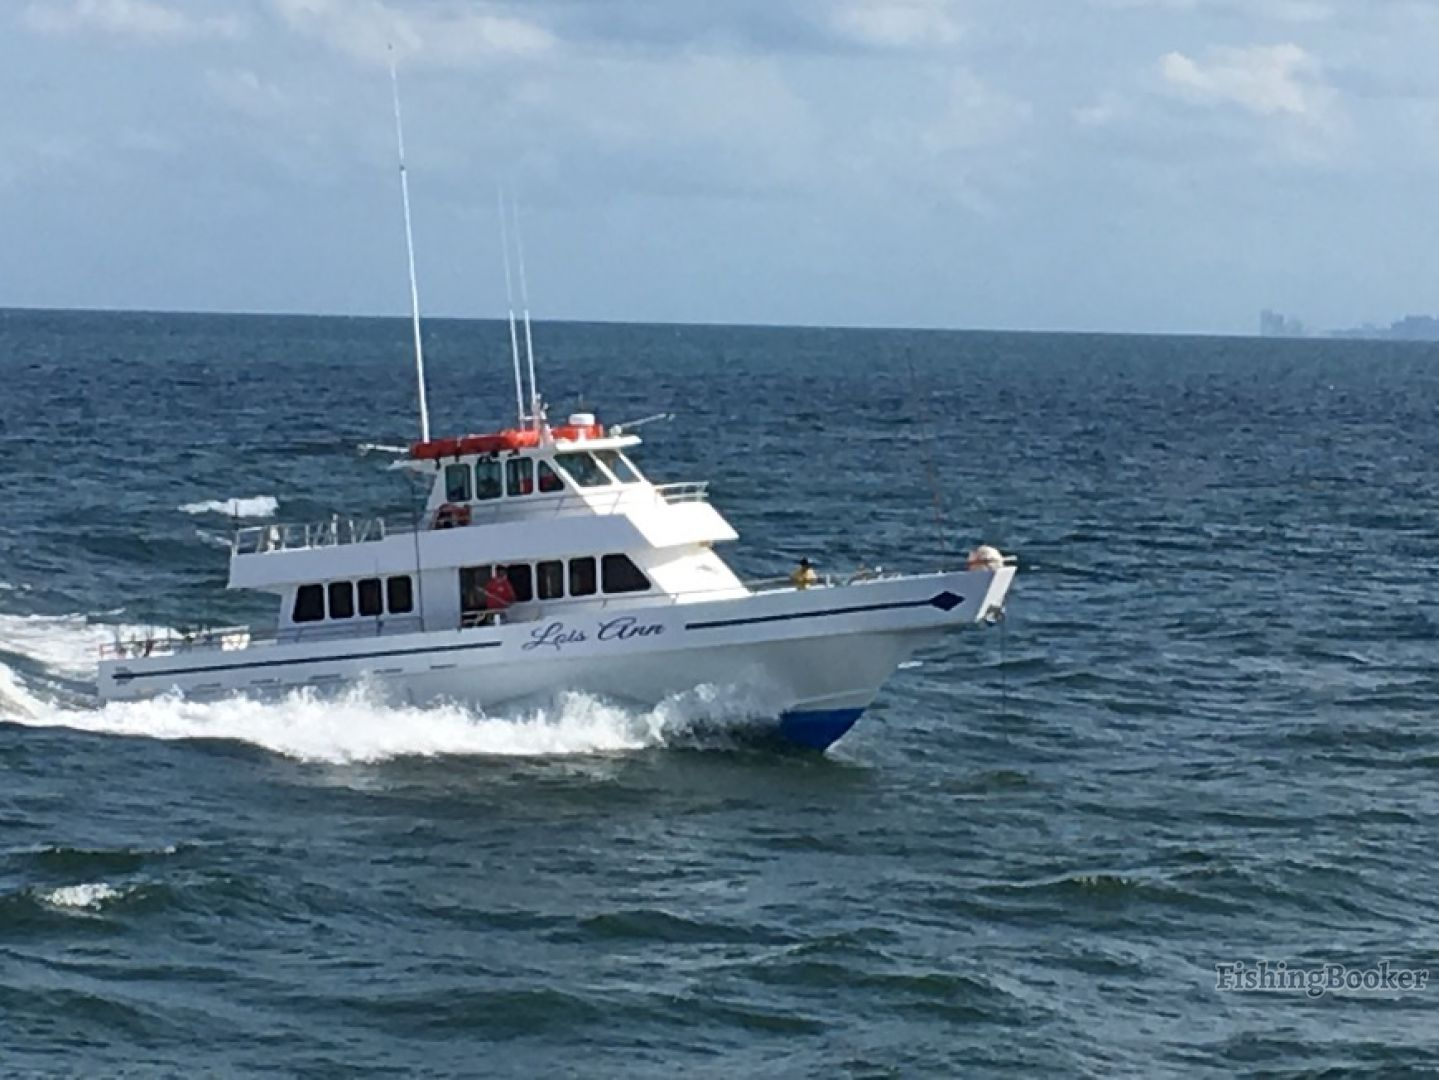 Lady pamela driftfishing partyboat hollywood florida for Hollywood florida fishing charters